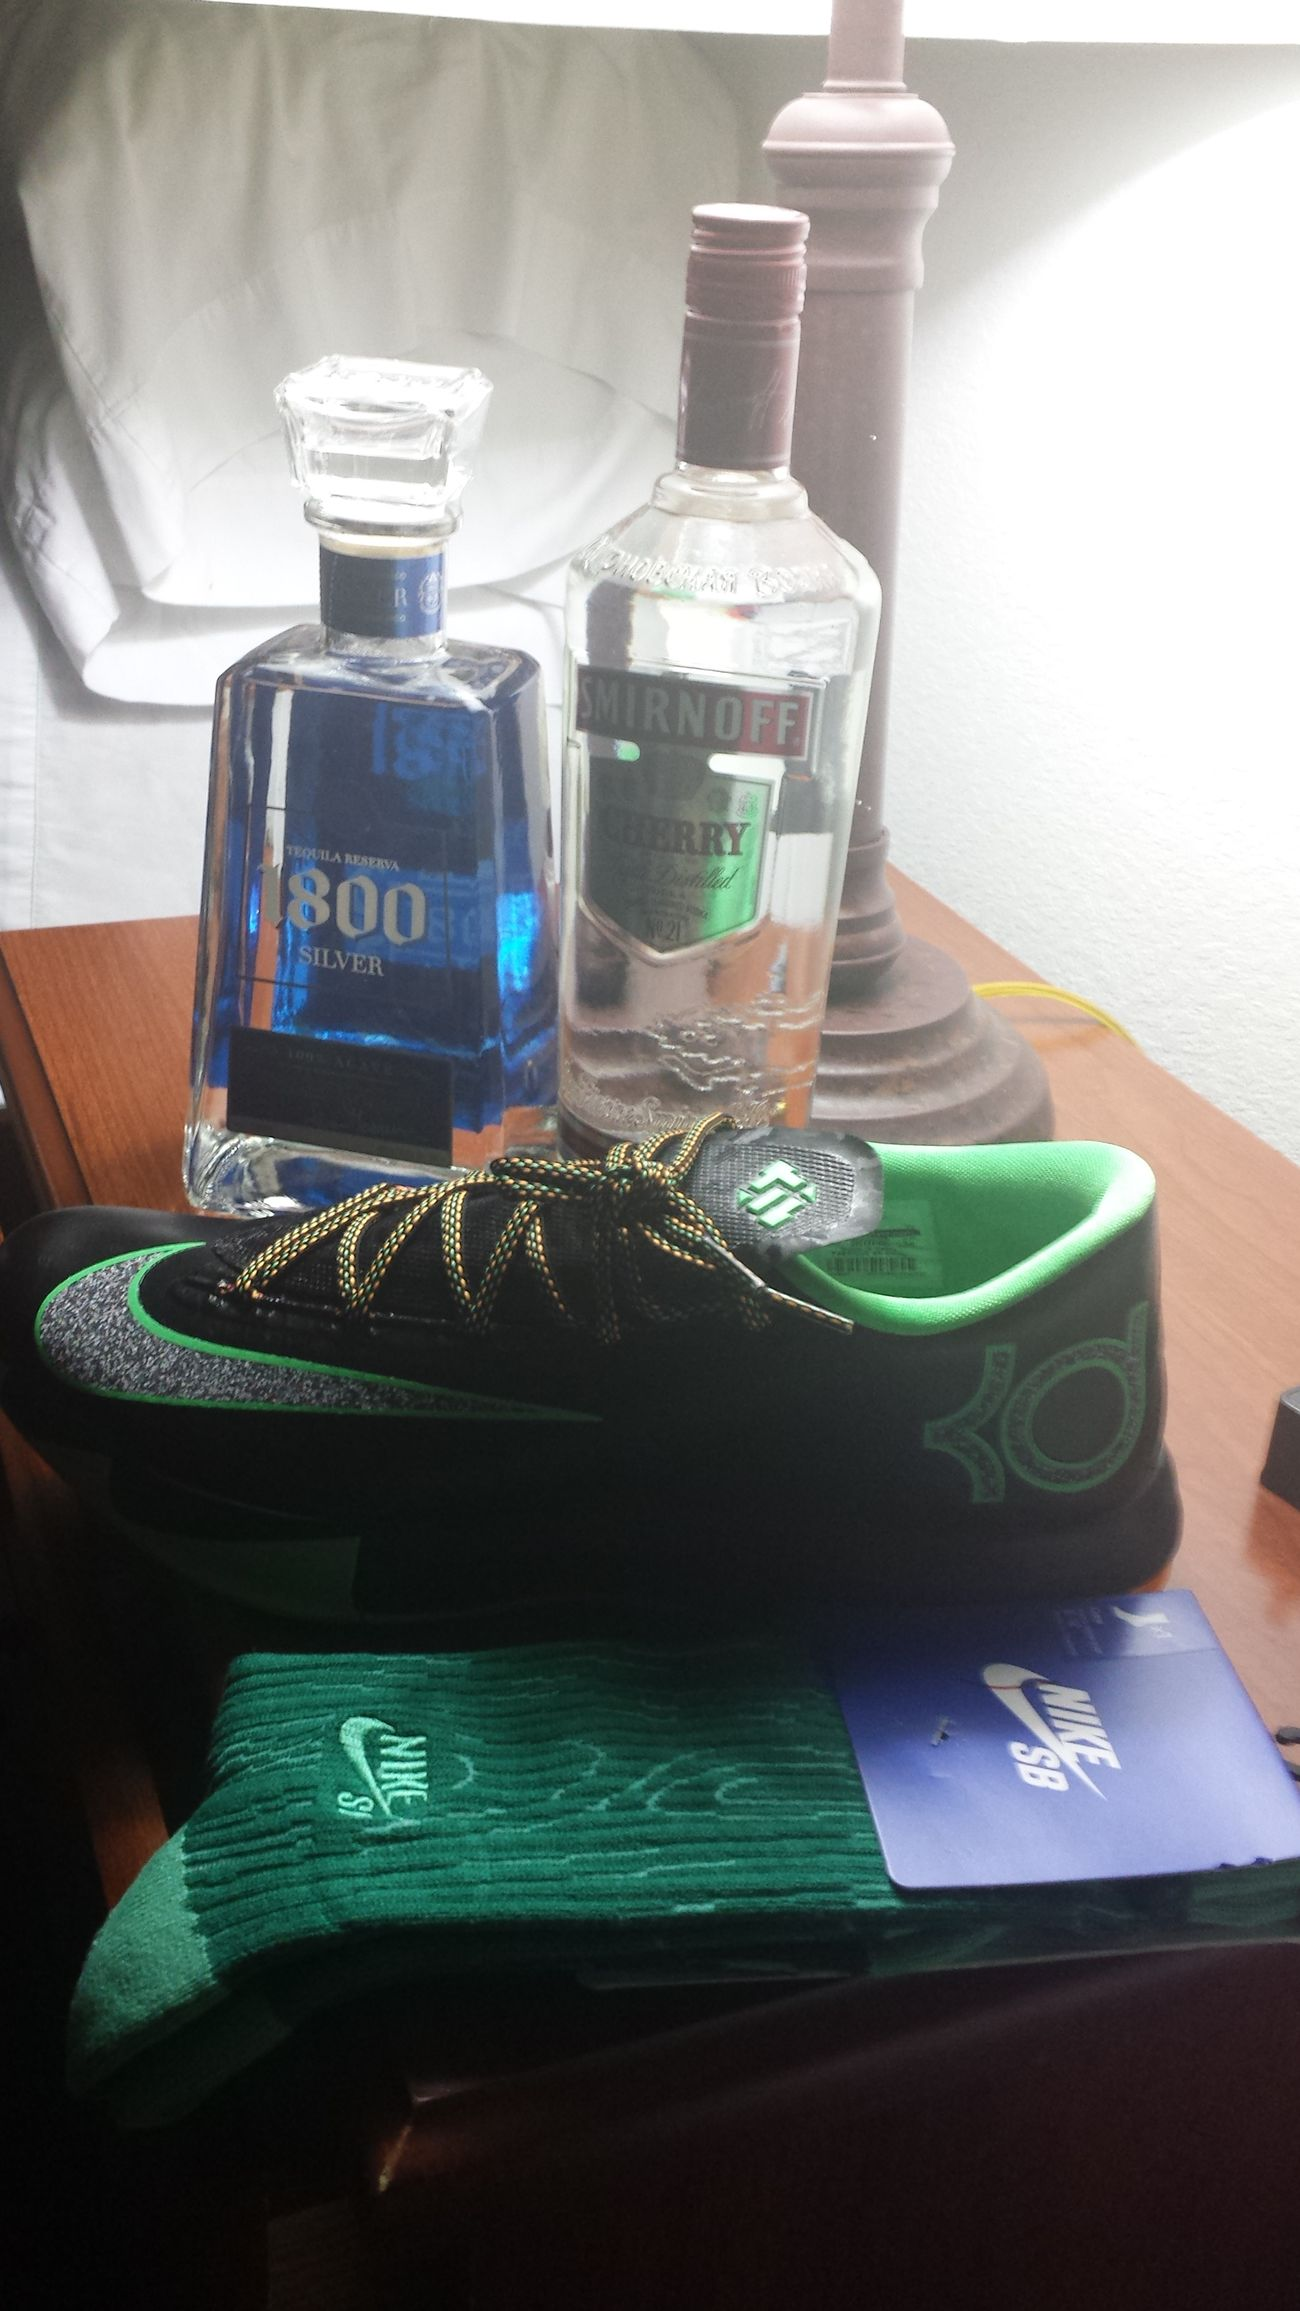 Bday tomorrow got me something's early. 1800 Sliver  Vodka Kds 6